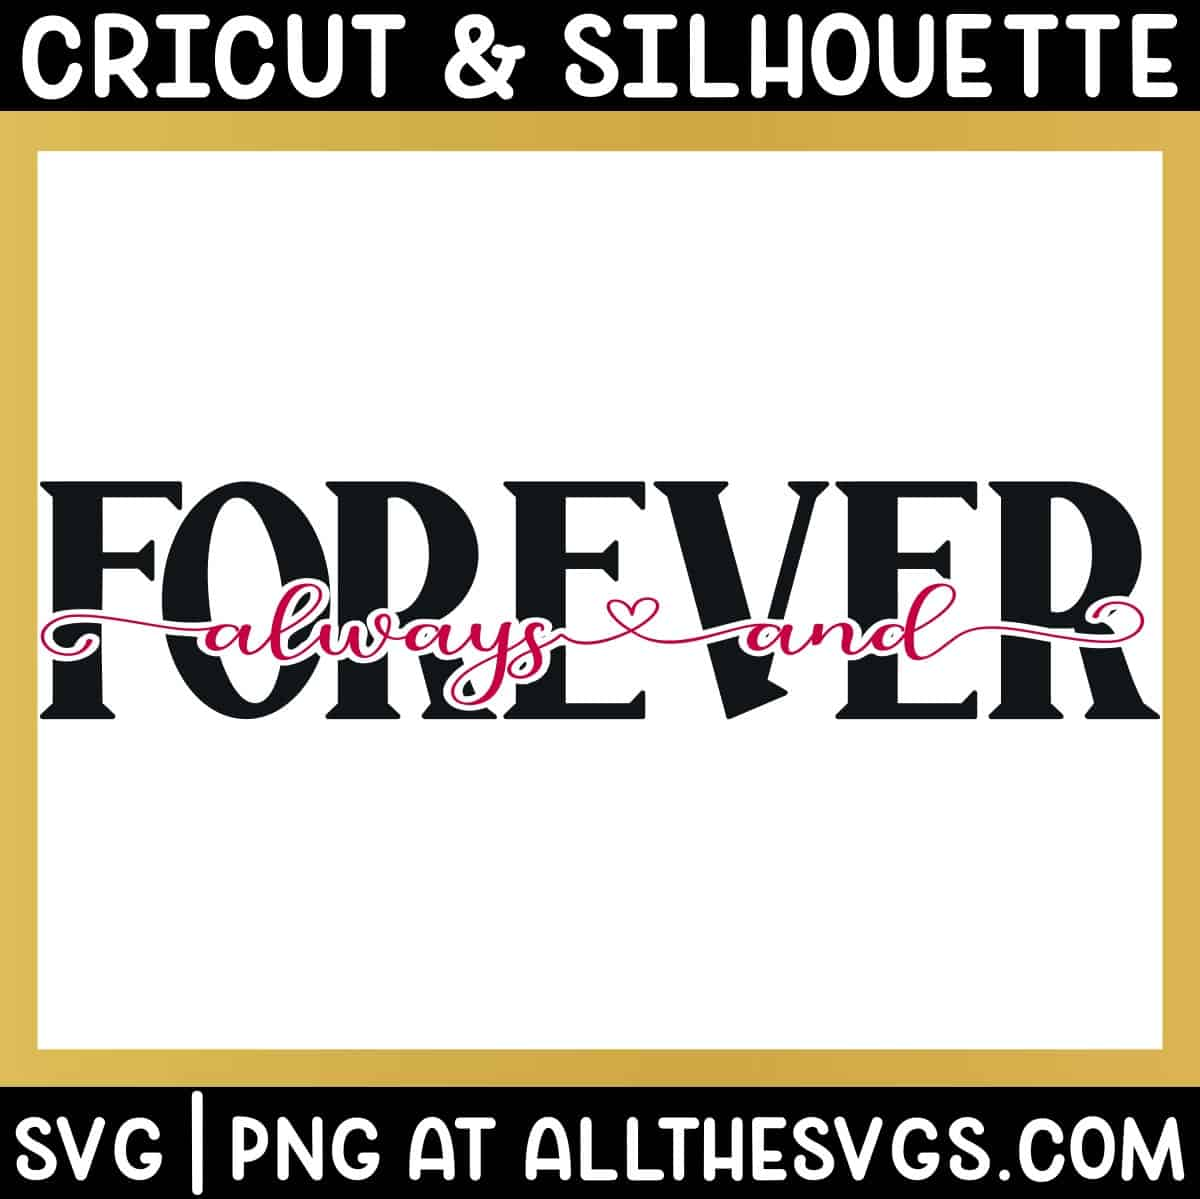 always and in cursive with heart glyphs as knockout of forever in bold caps